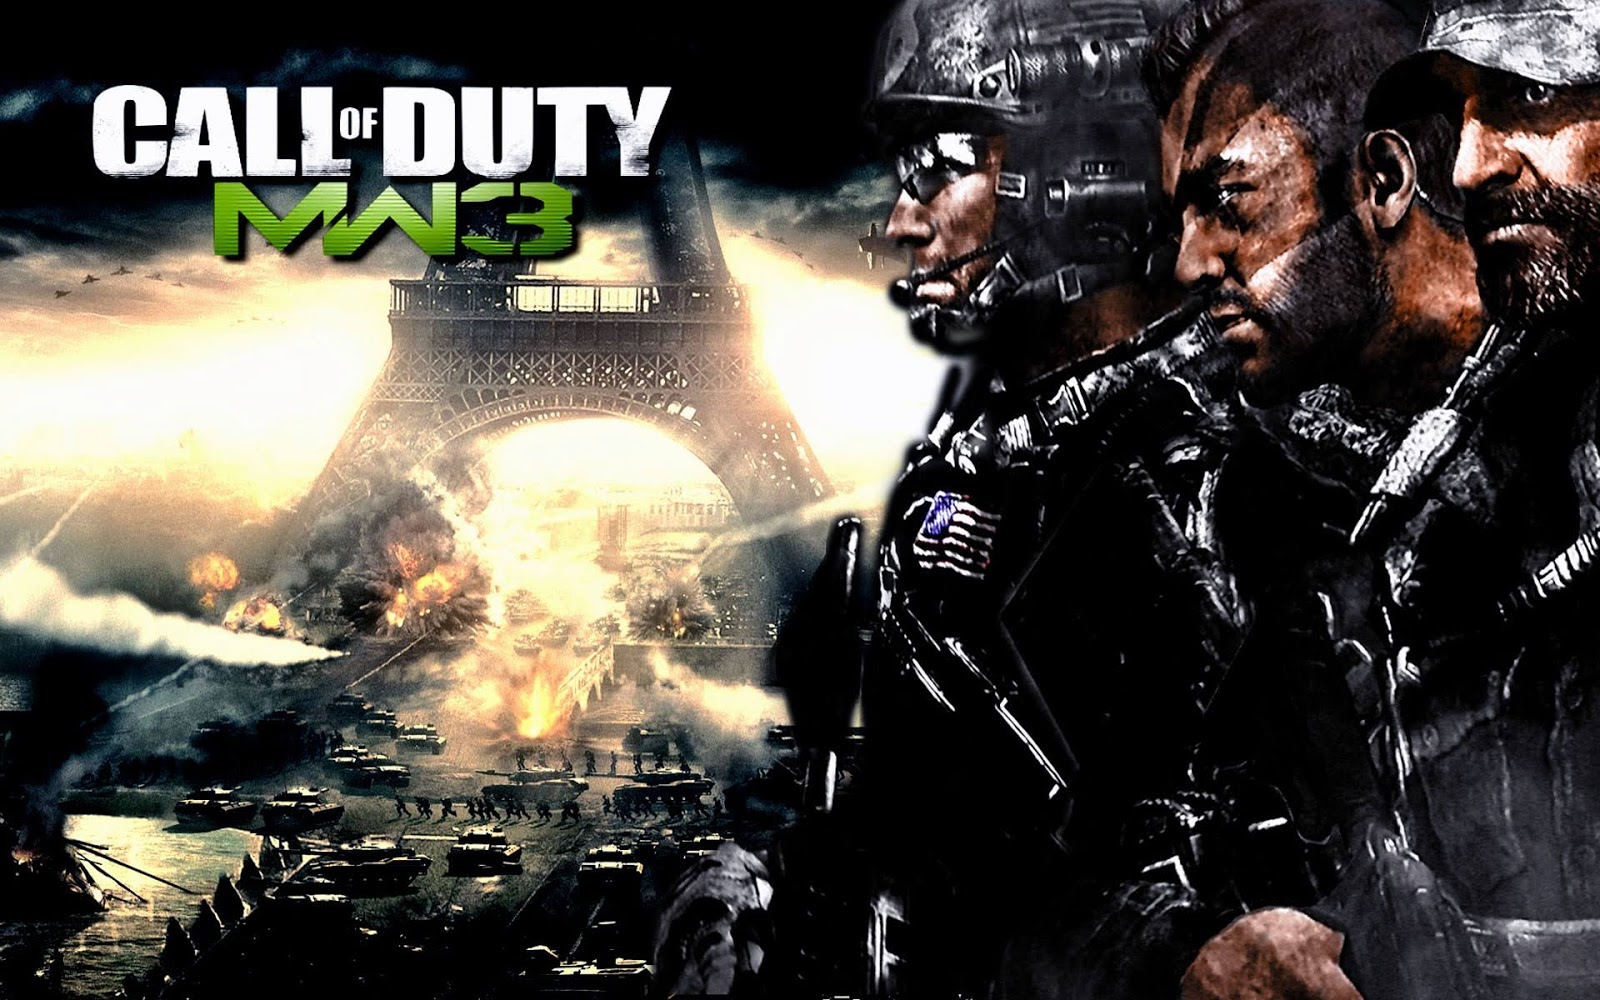 Game call of duty modern warface 3 dark edition download free xbox android pc remastered COD MW3 Full DLC tải về miễn phí